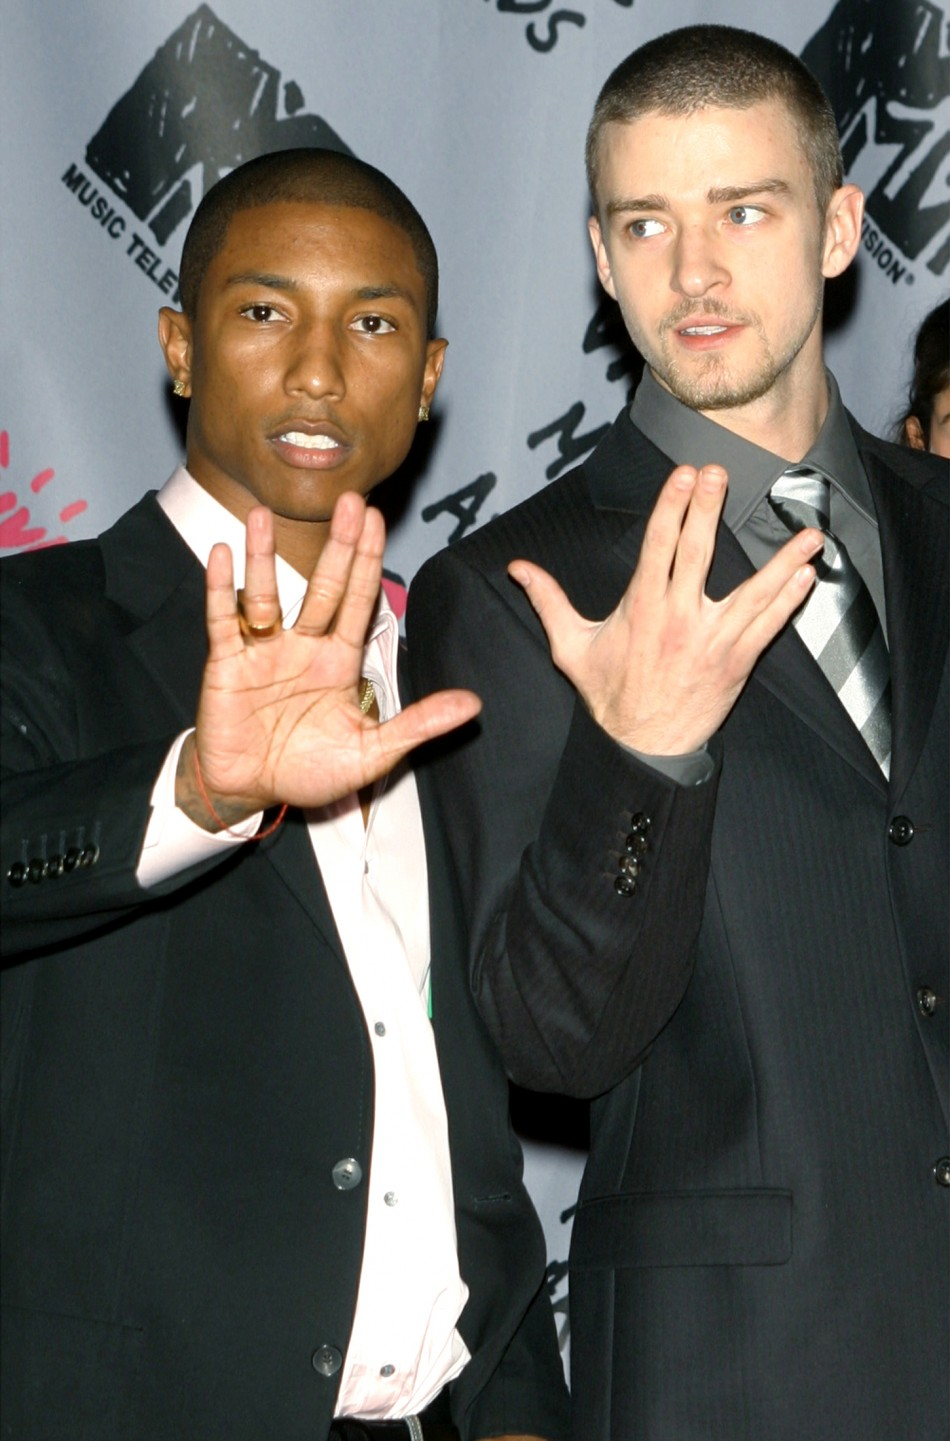 Pharrell Williams photo #316945